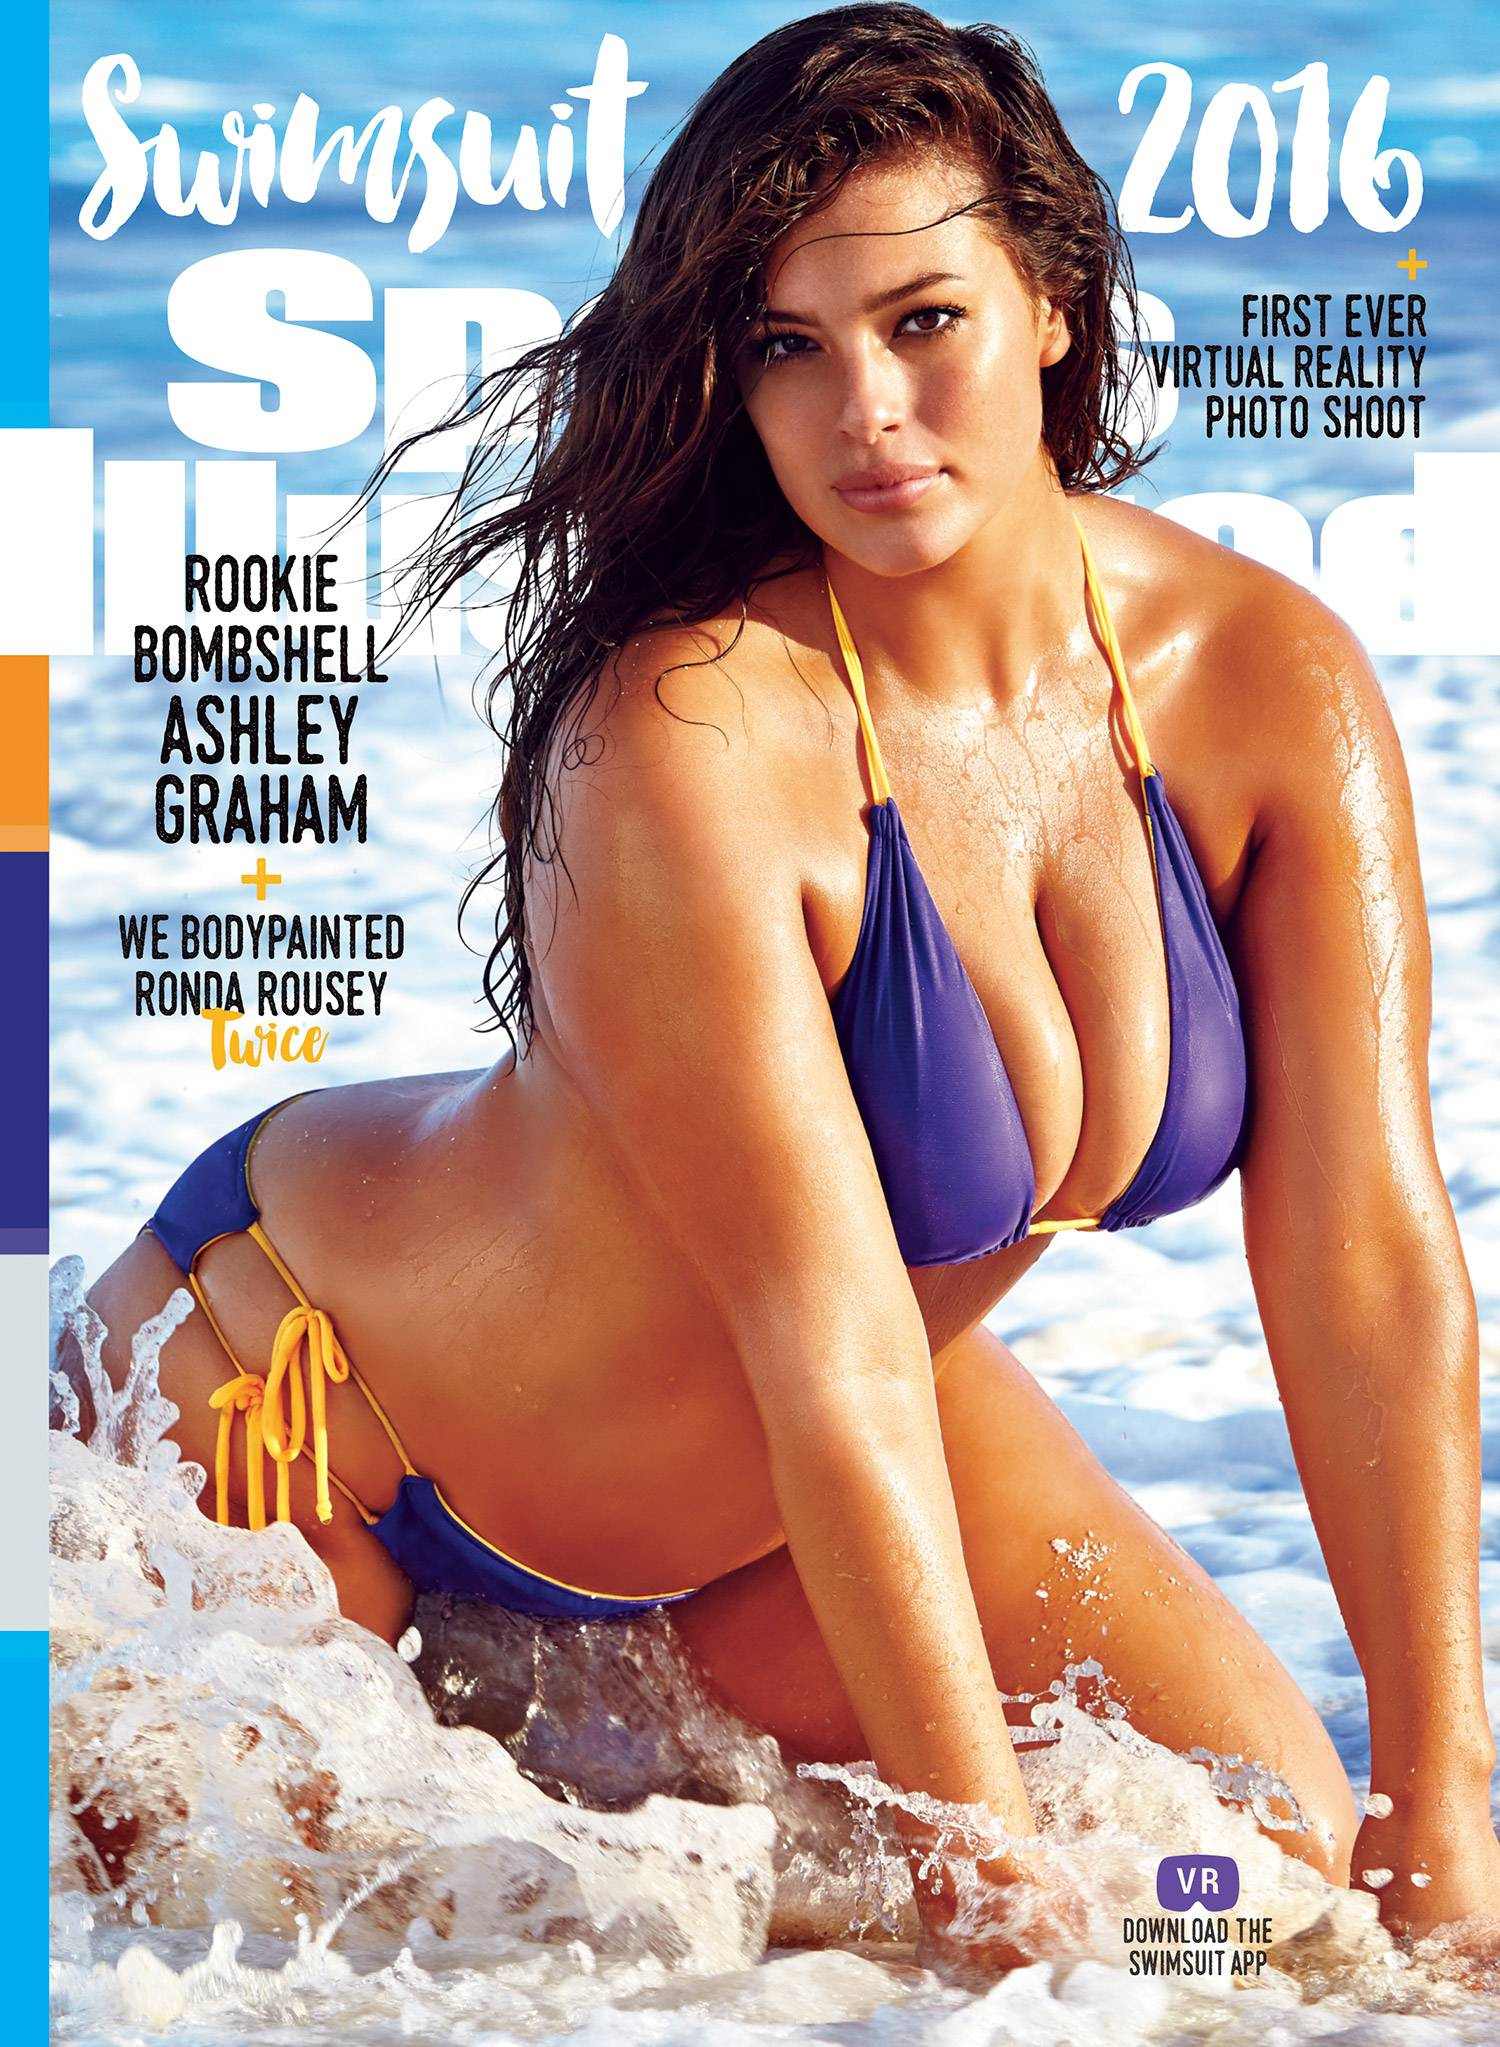 Ashley Graham—Credit: James Macari/Sports Illustrated